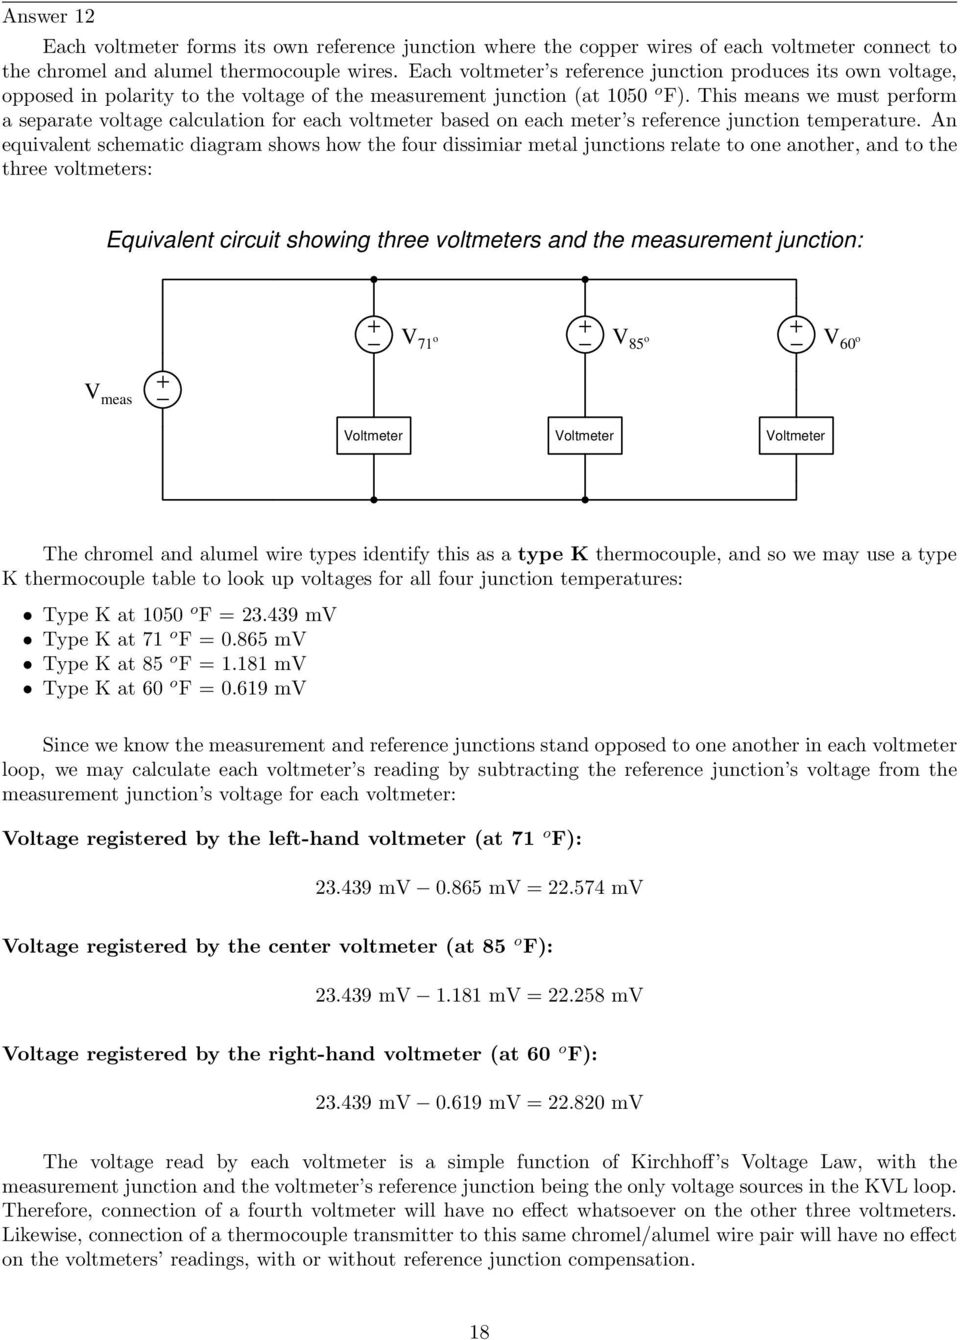 Rtd And Thermocouple Circuits With Millivolt Calculations Pdf Circuit Diagram Voltmeter This Means We Must Perform A Separate Voltage Calculation For Each Based On Meter